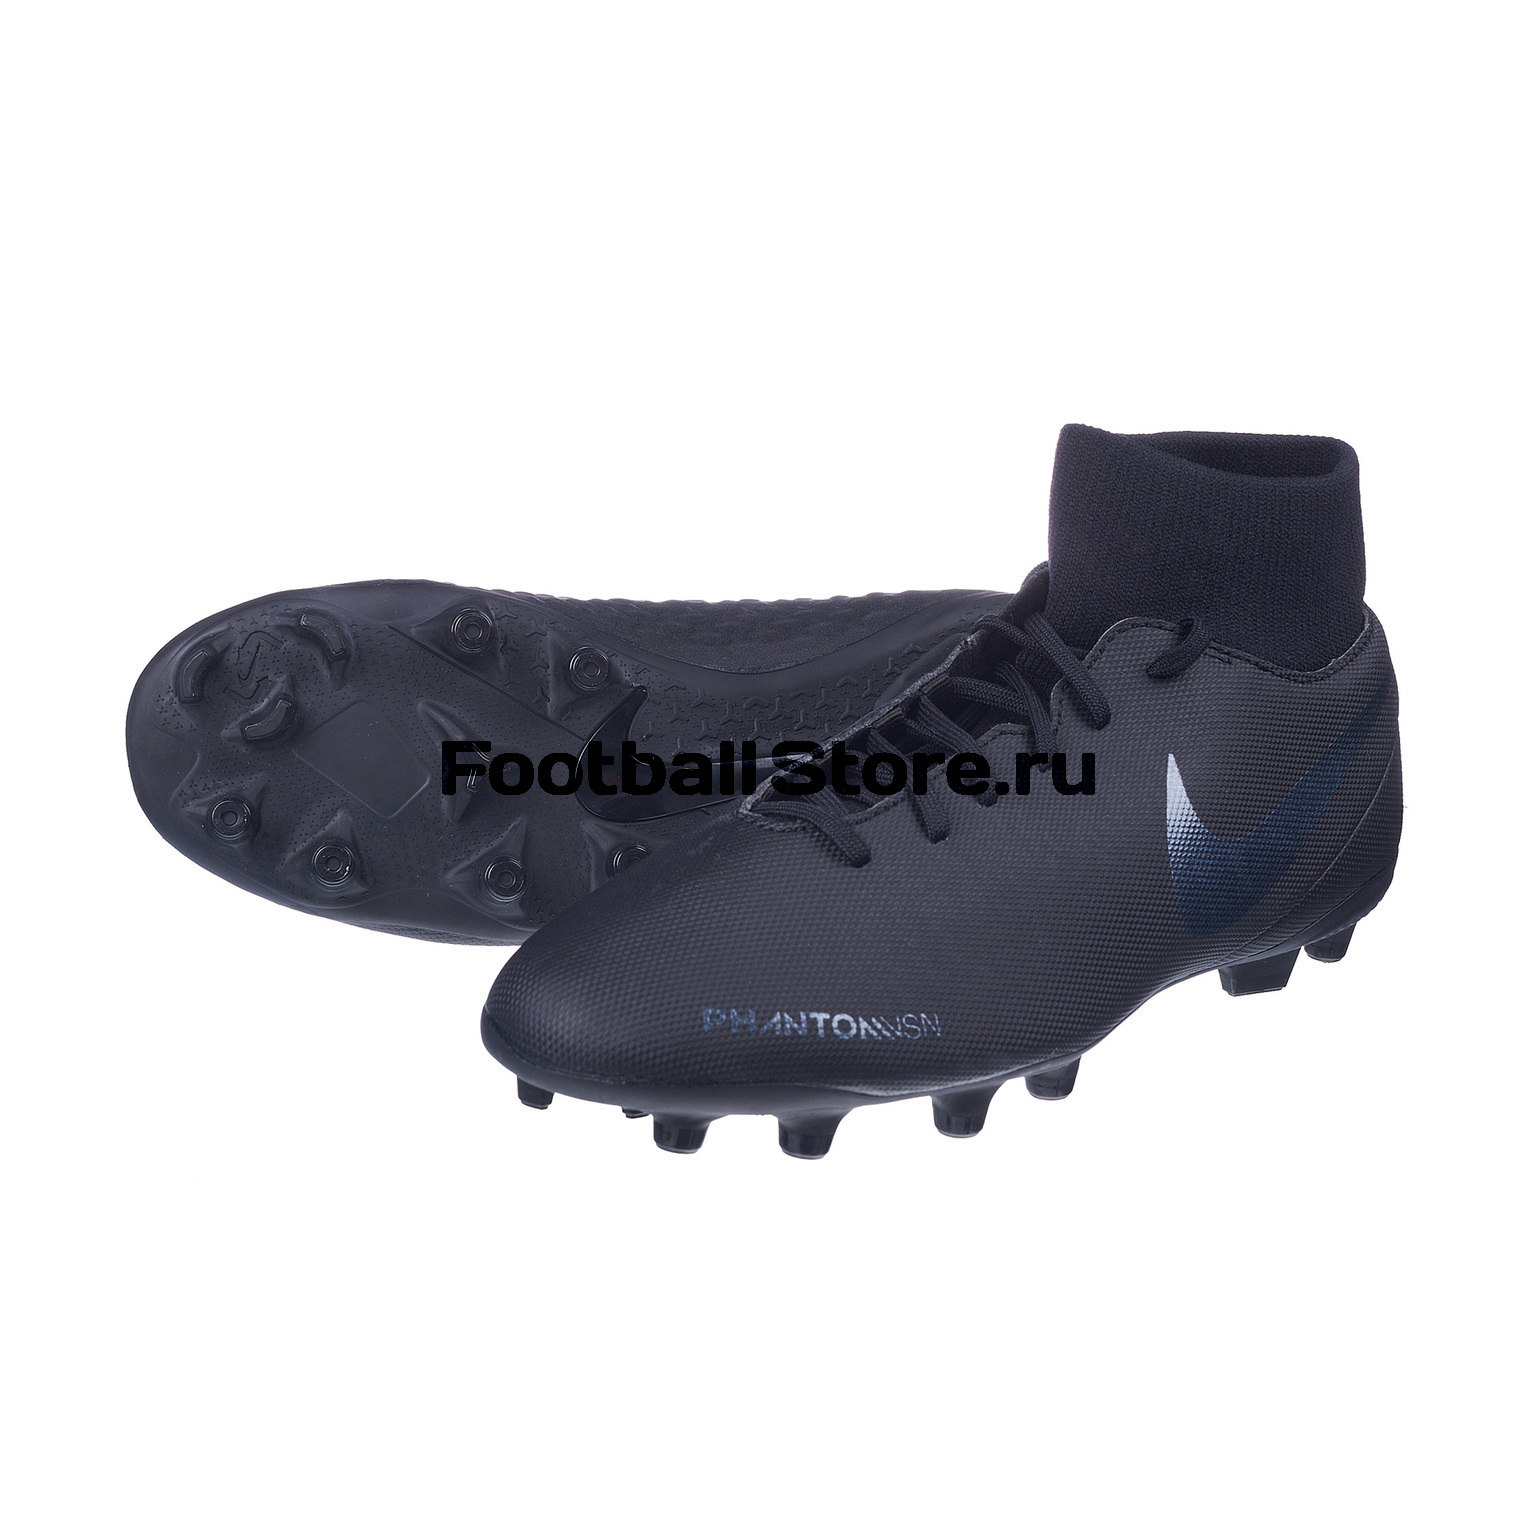 Бутсы Nike Phantom Vision Club DF FG/MG AJ6959-001 бутсы детские nike phantom vision academy df fg mg ao3287 600